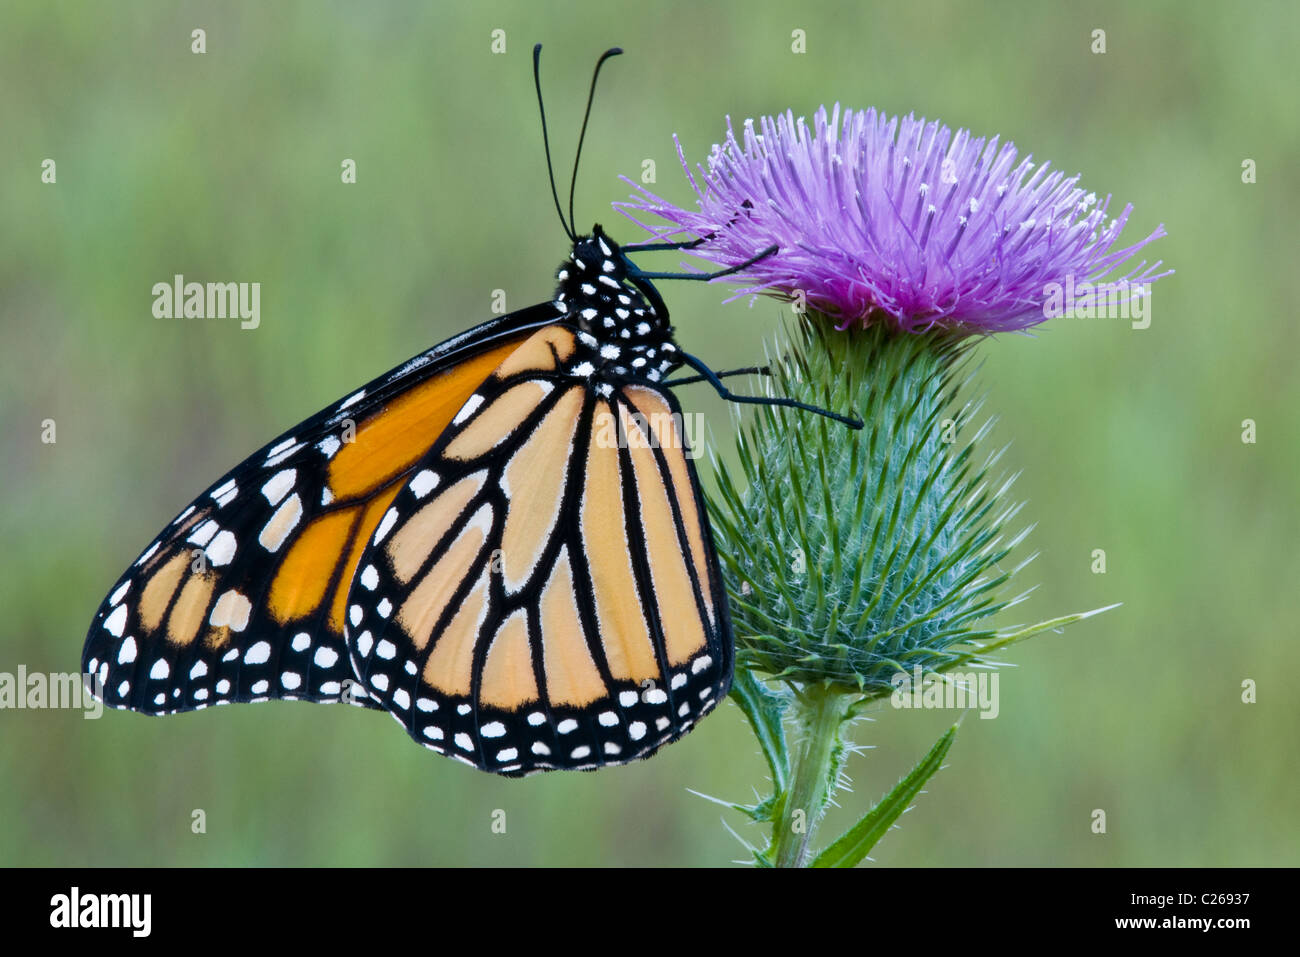 Monarch Butterfly danaus plexippus feeding nectaring pollinating Bull Thistle flower Cirsium vulgare Eastern USA - Stock Image